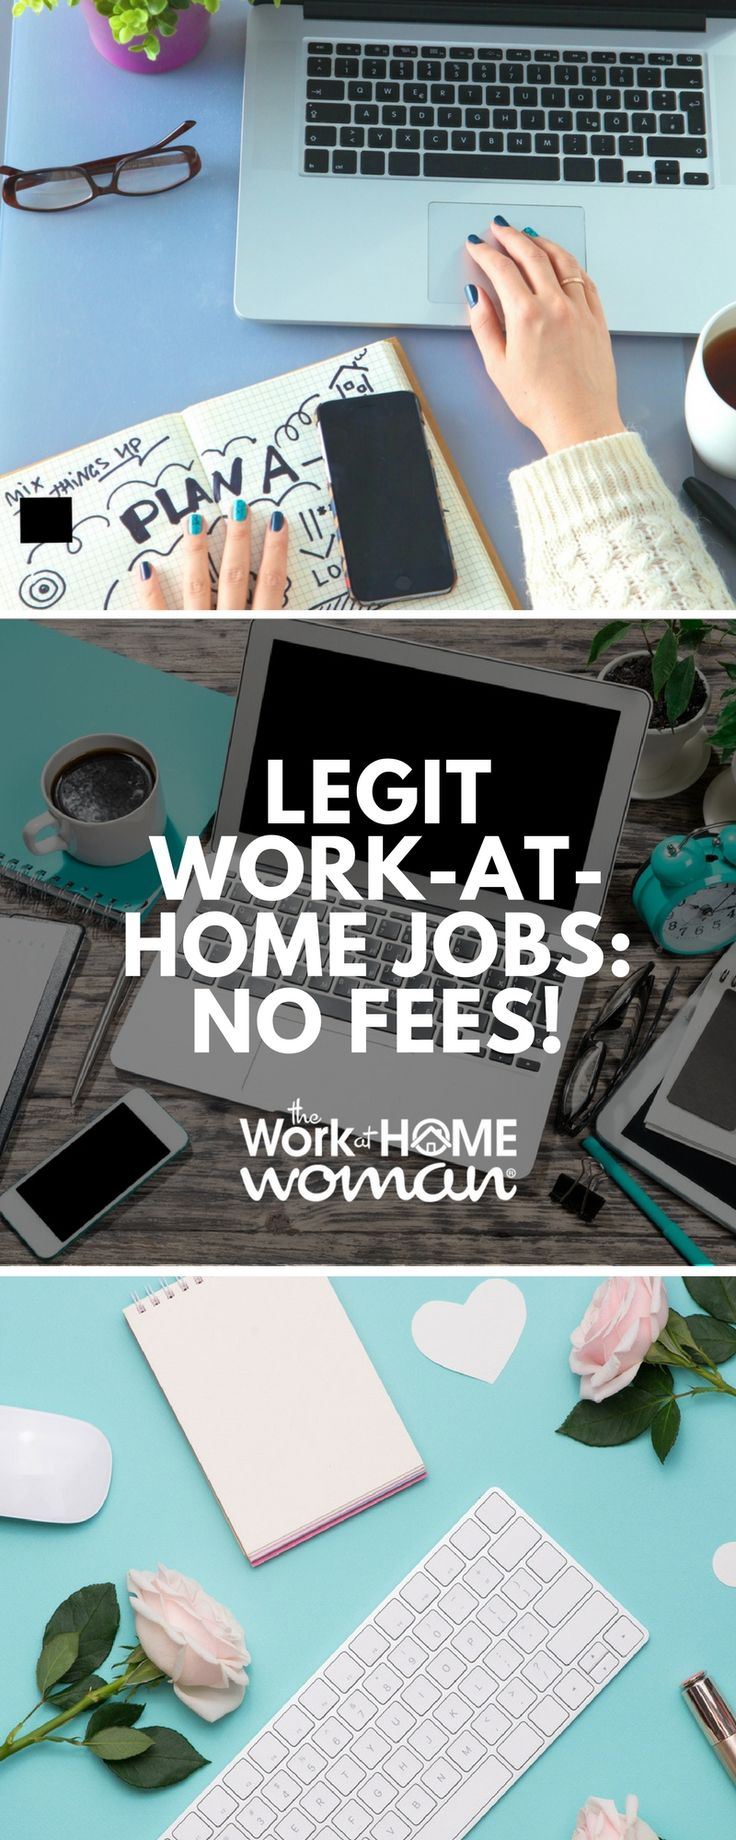 Find Out The Truth About Work At Home Fees And Equipment Requirements. Then